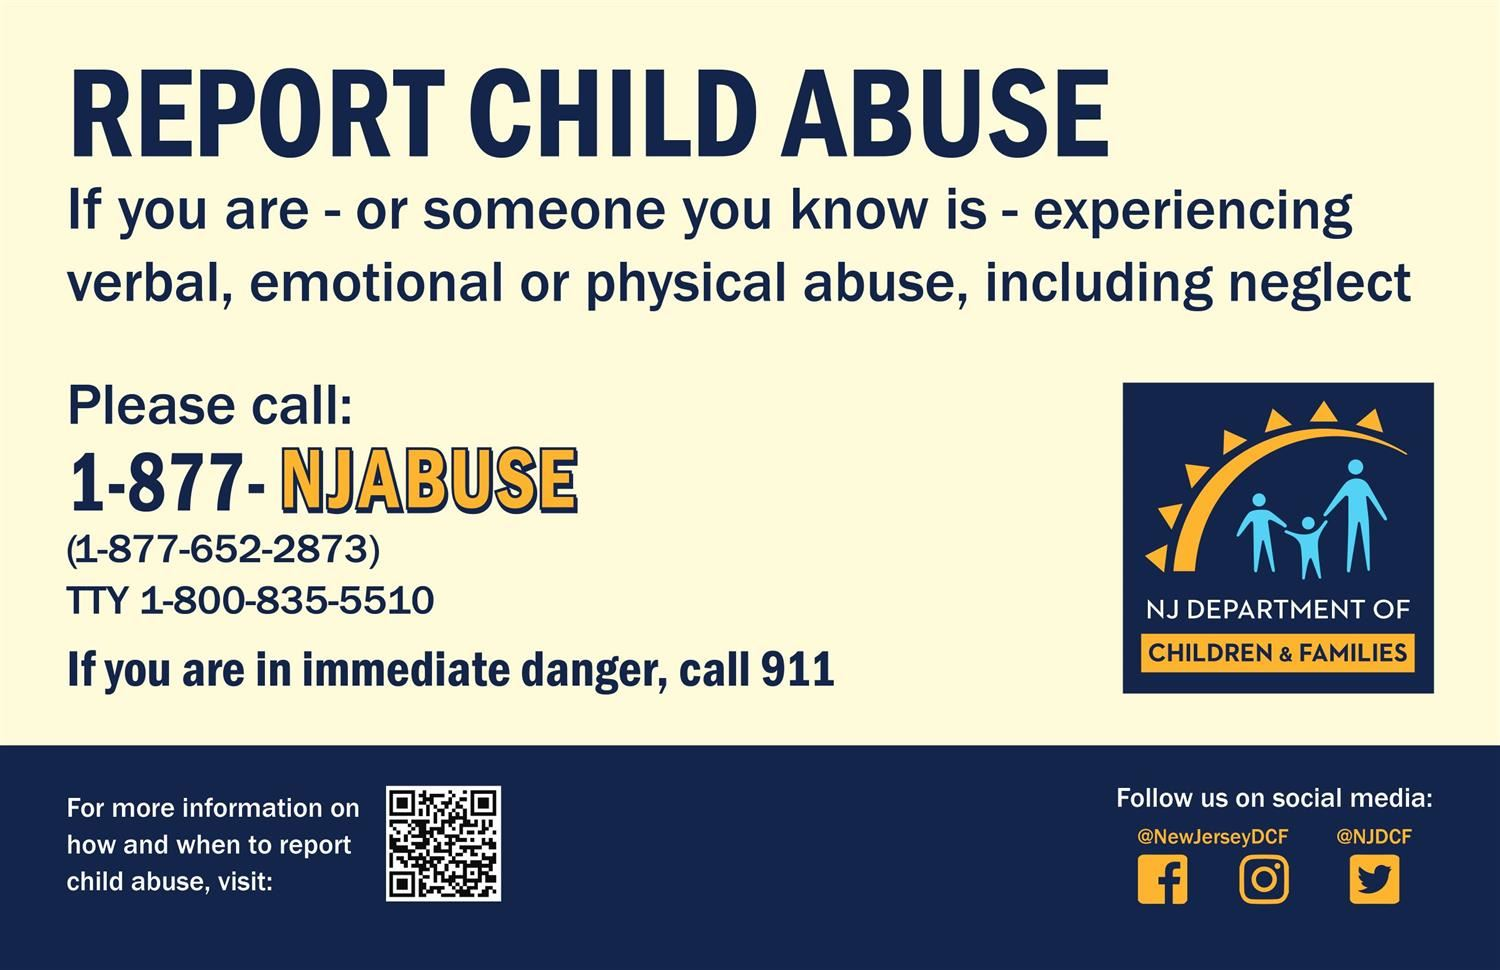 NJDCF Abuse Hotline: 1-877-NJABUSE